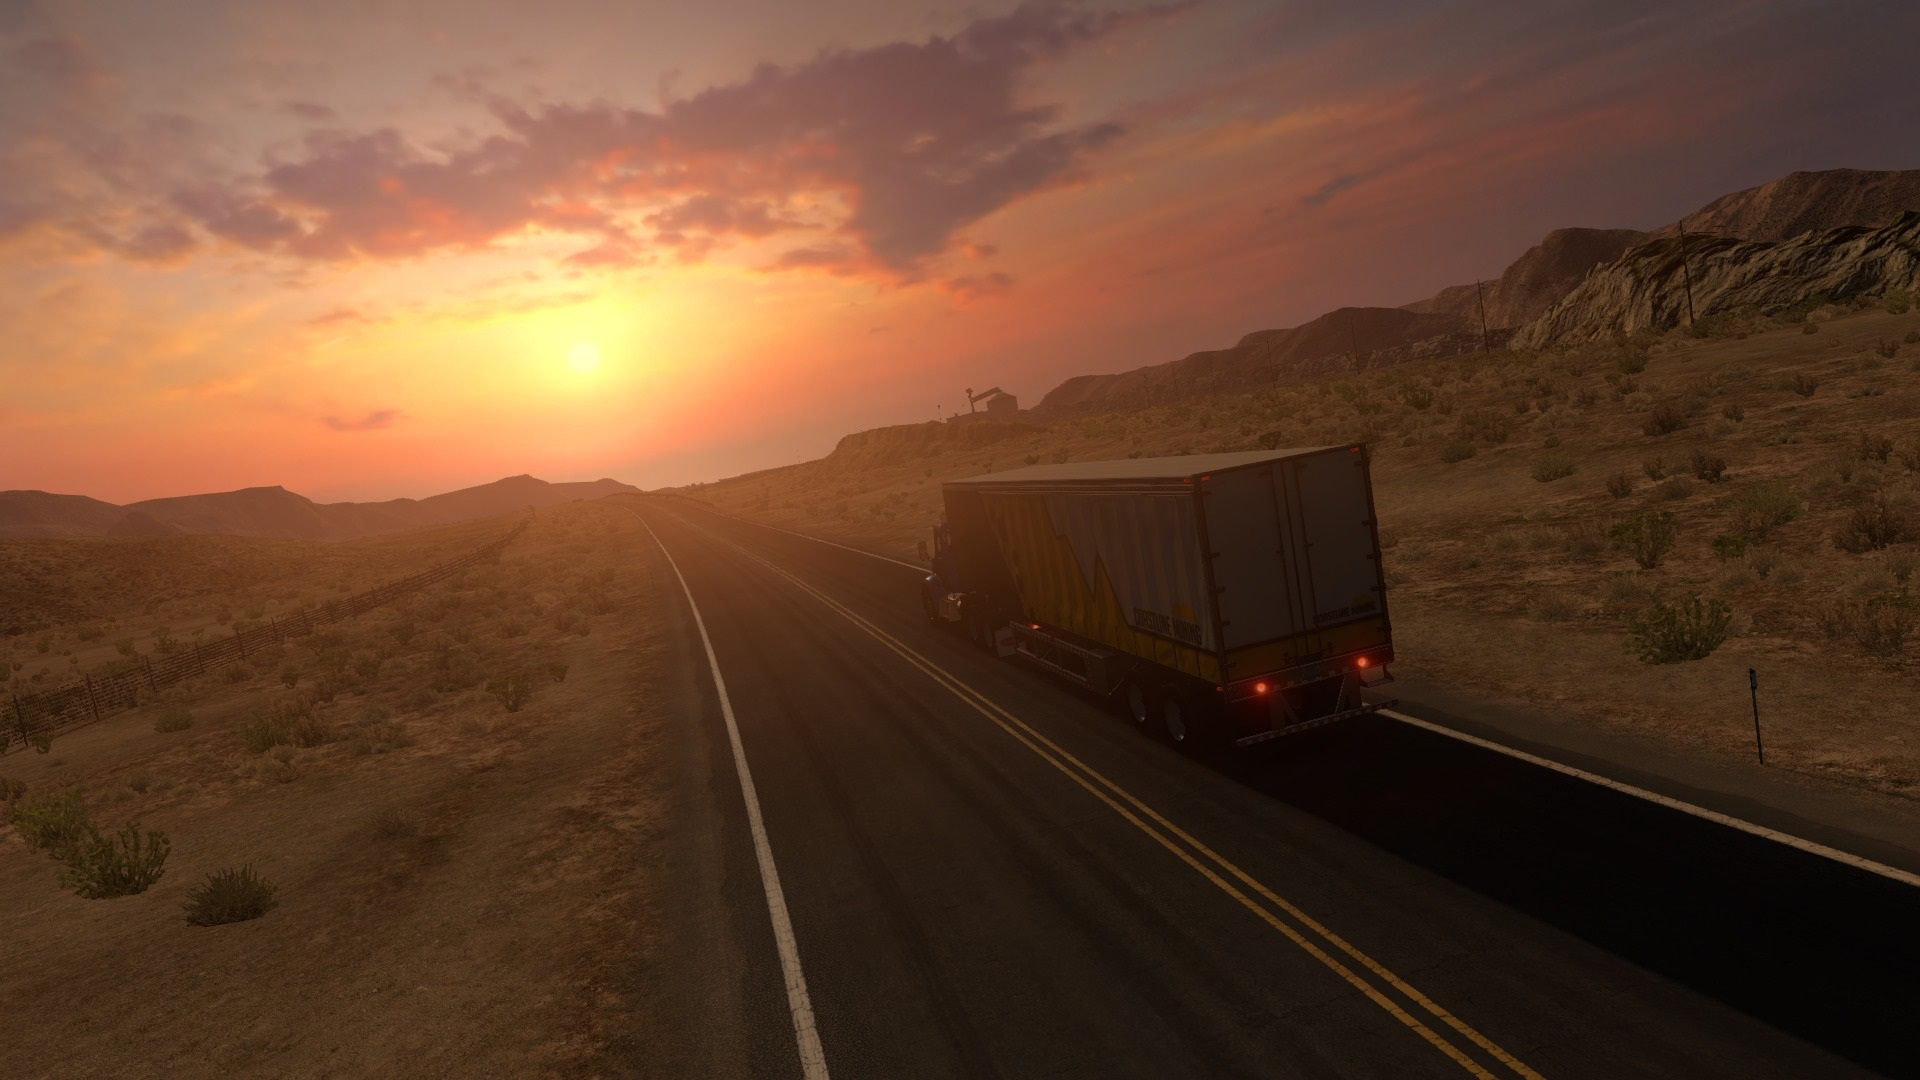 Wallpaper Truck Road Speed Sunset 1920x1080 Full HD 2K Picture Image